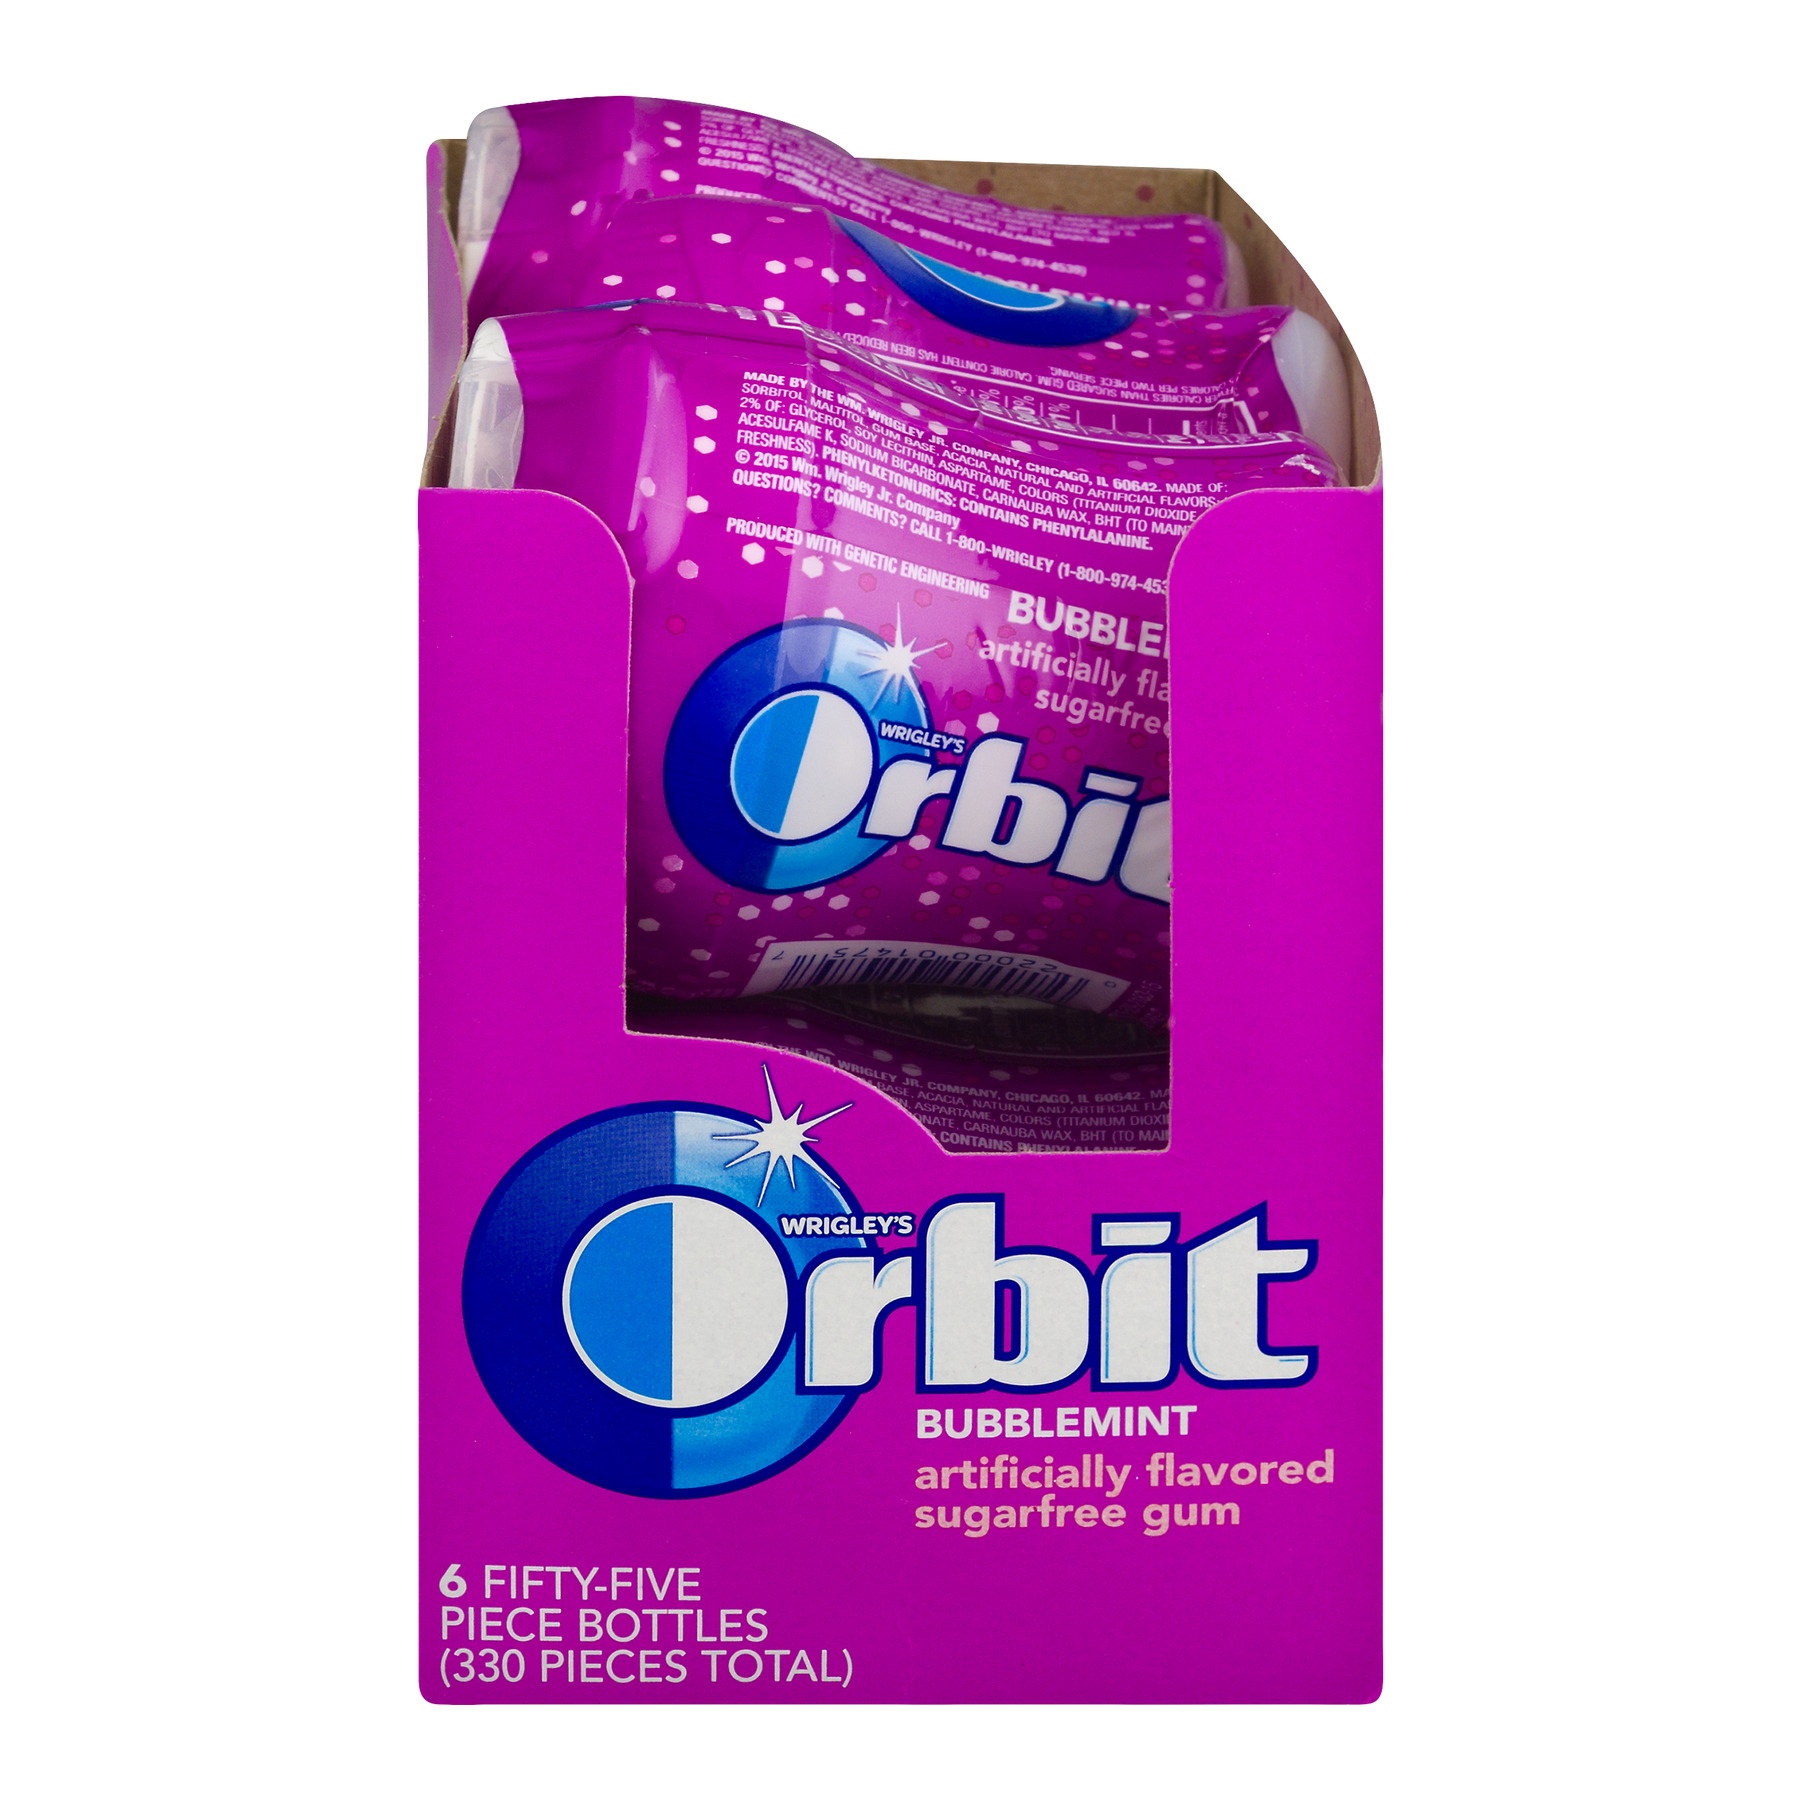 Orbit, Sugar Free Bubblemint Chewing Gum, 6 Ct